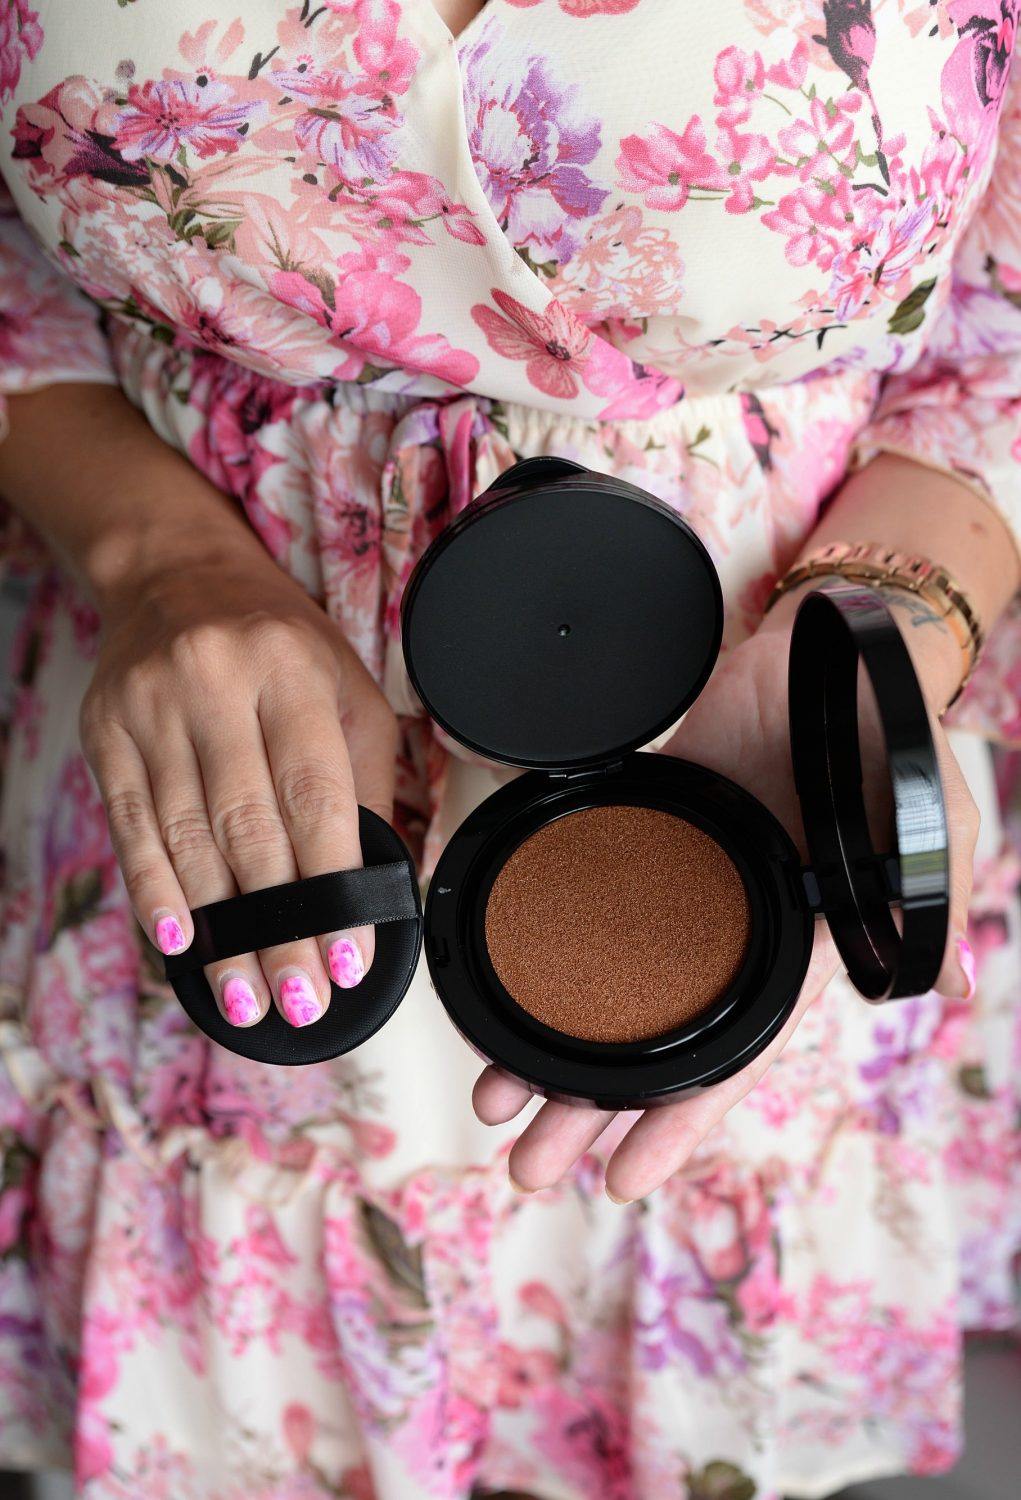 Avon fmg Colors of Love Sunkissed Cushion Bronzer